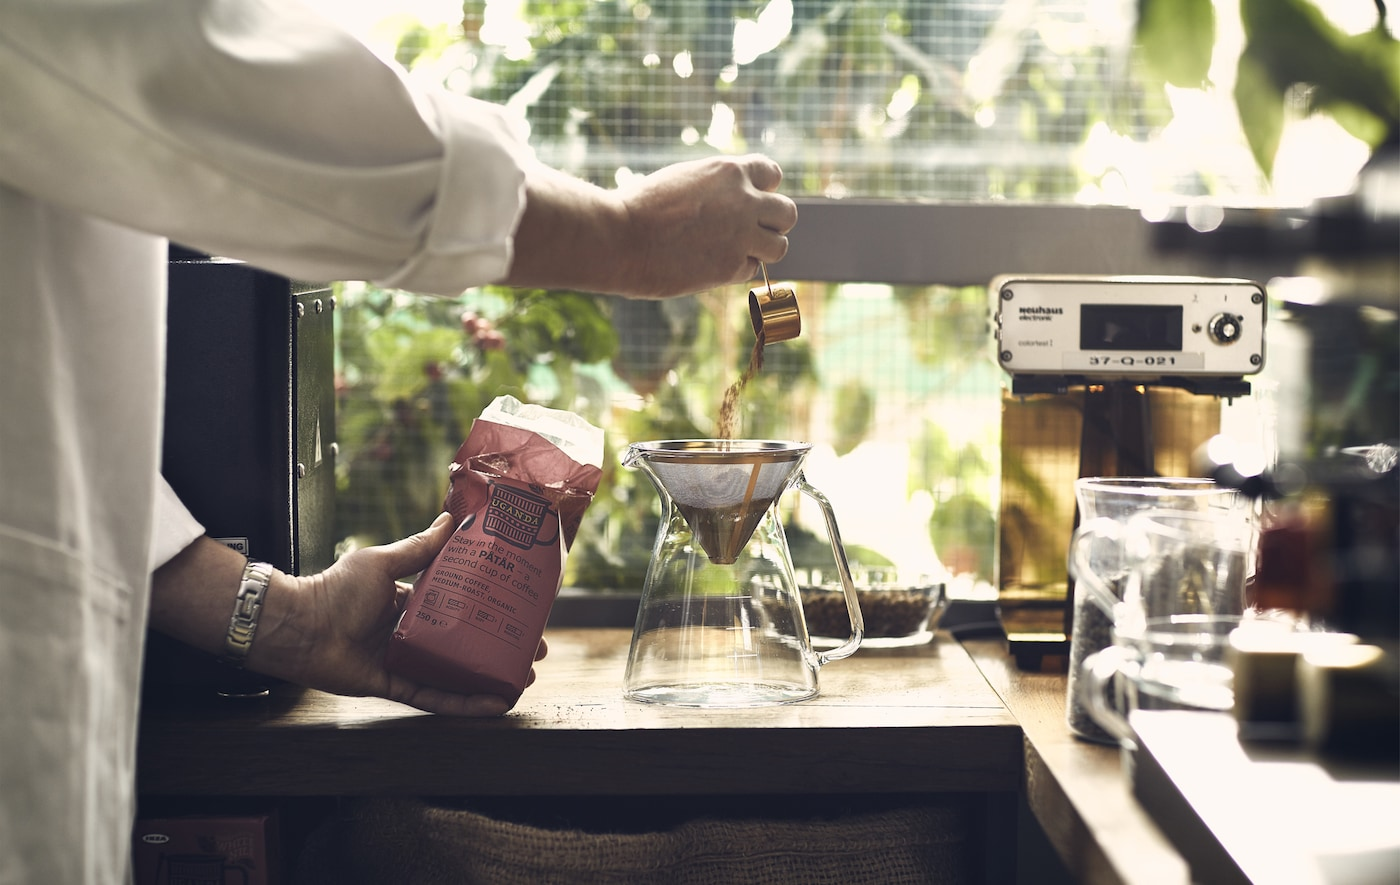 A person pours ground coffee into a filter on a wooden worktop with greenery outside the window behind.